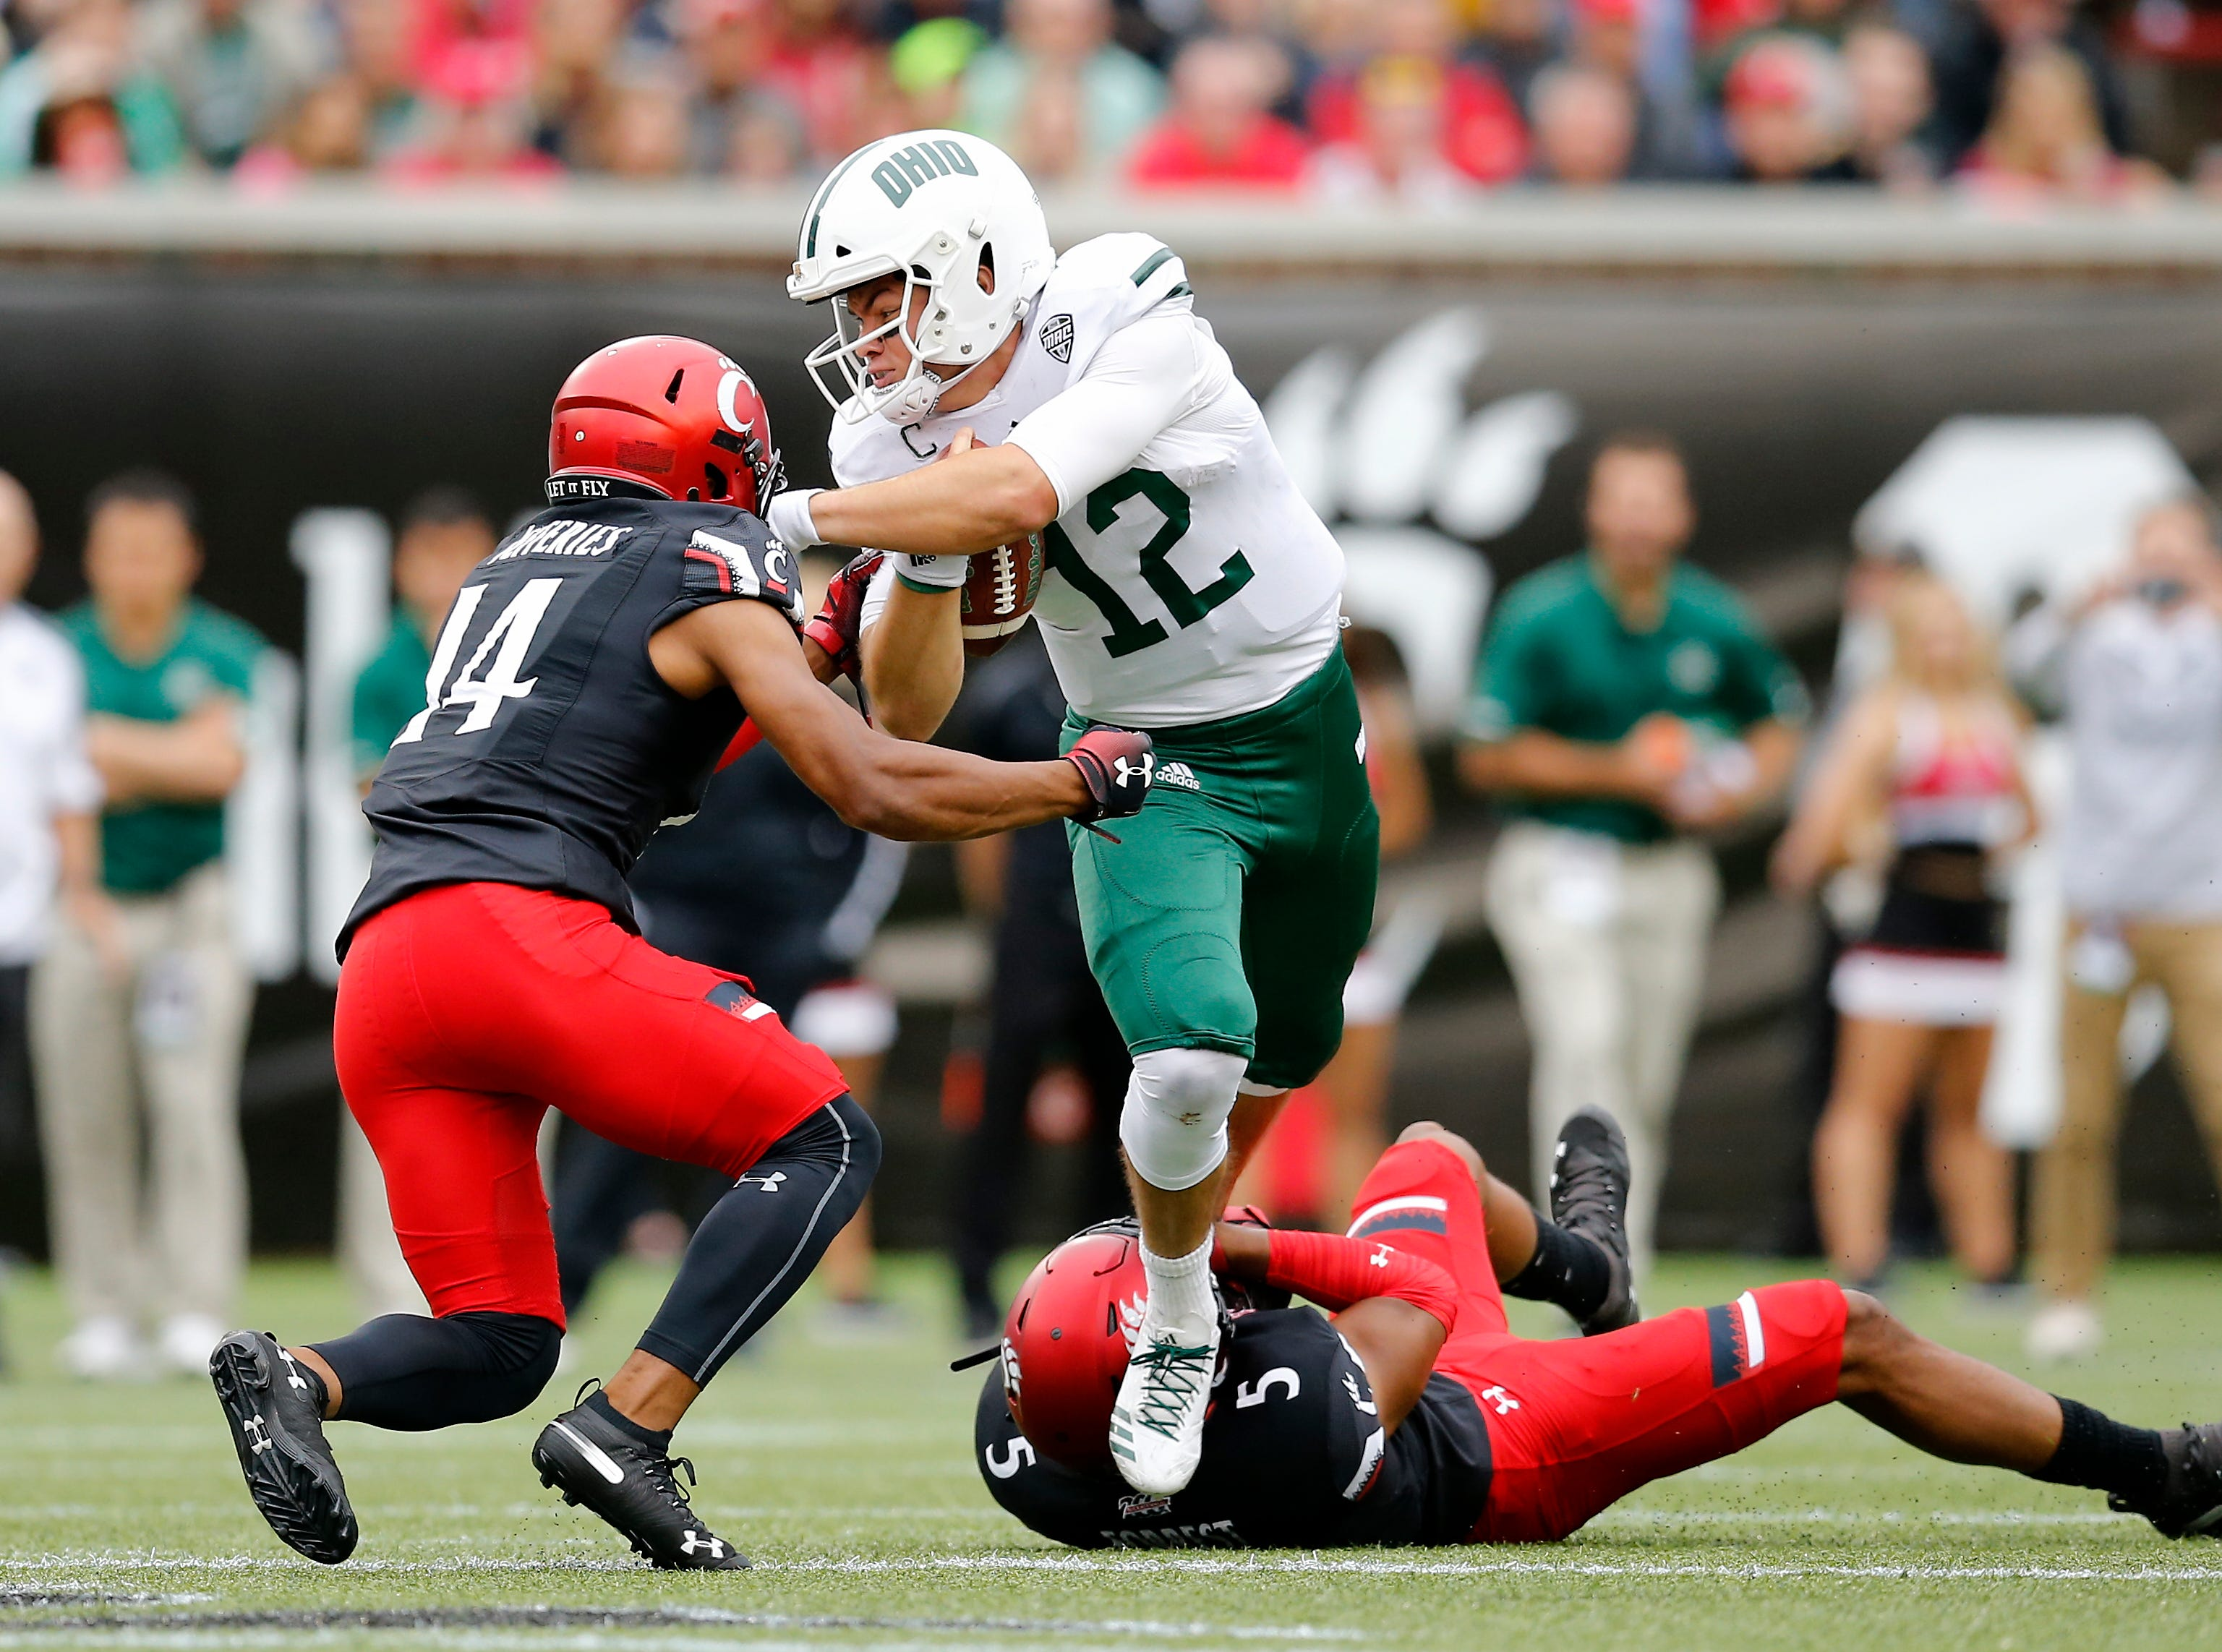 Ohio Bobcats quarterback Nathan Rourke (12) breaks a tackle in the first quarter of the NCAA football game between the Cincinnati Bearcats and the Ohio Bobcats at Nippert Stadium on the University of Cincinnati campus in Cincinnati on Saturday, Sept. 22, 2018. The Bobcats led 24-7 at halftime.